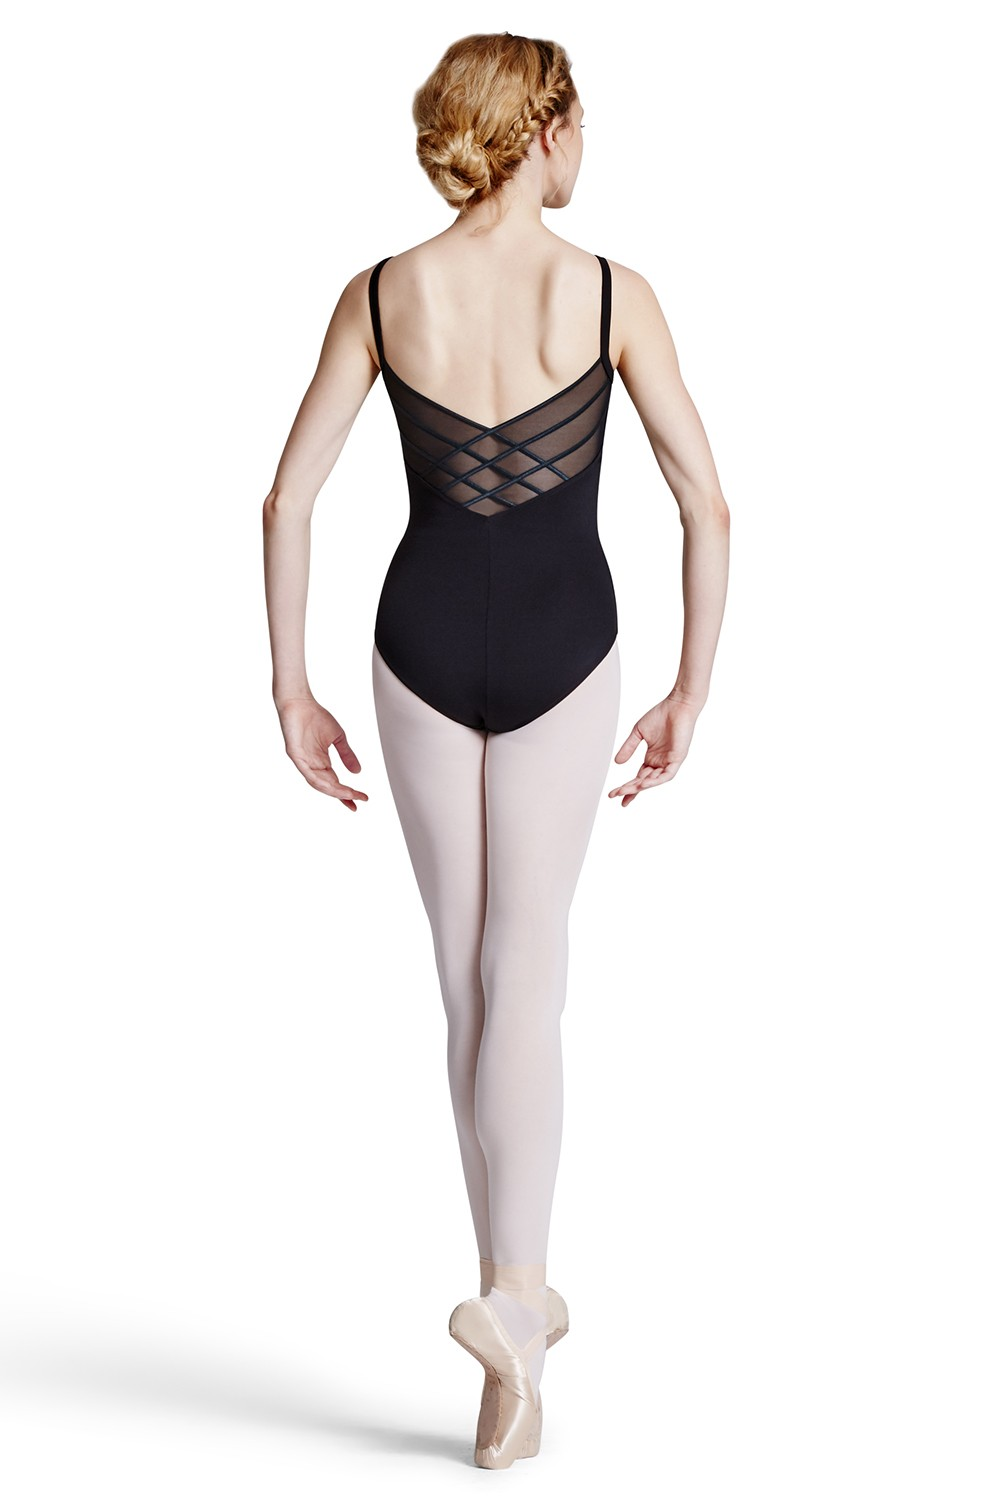 Allnatt Womens Camisole Leotards